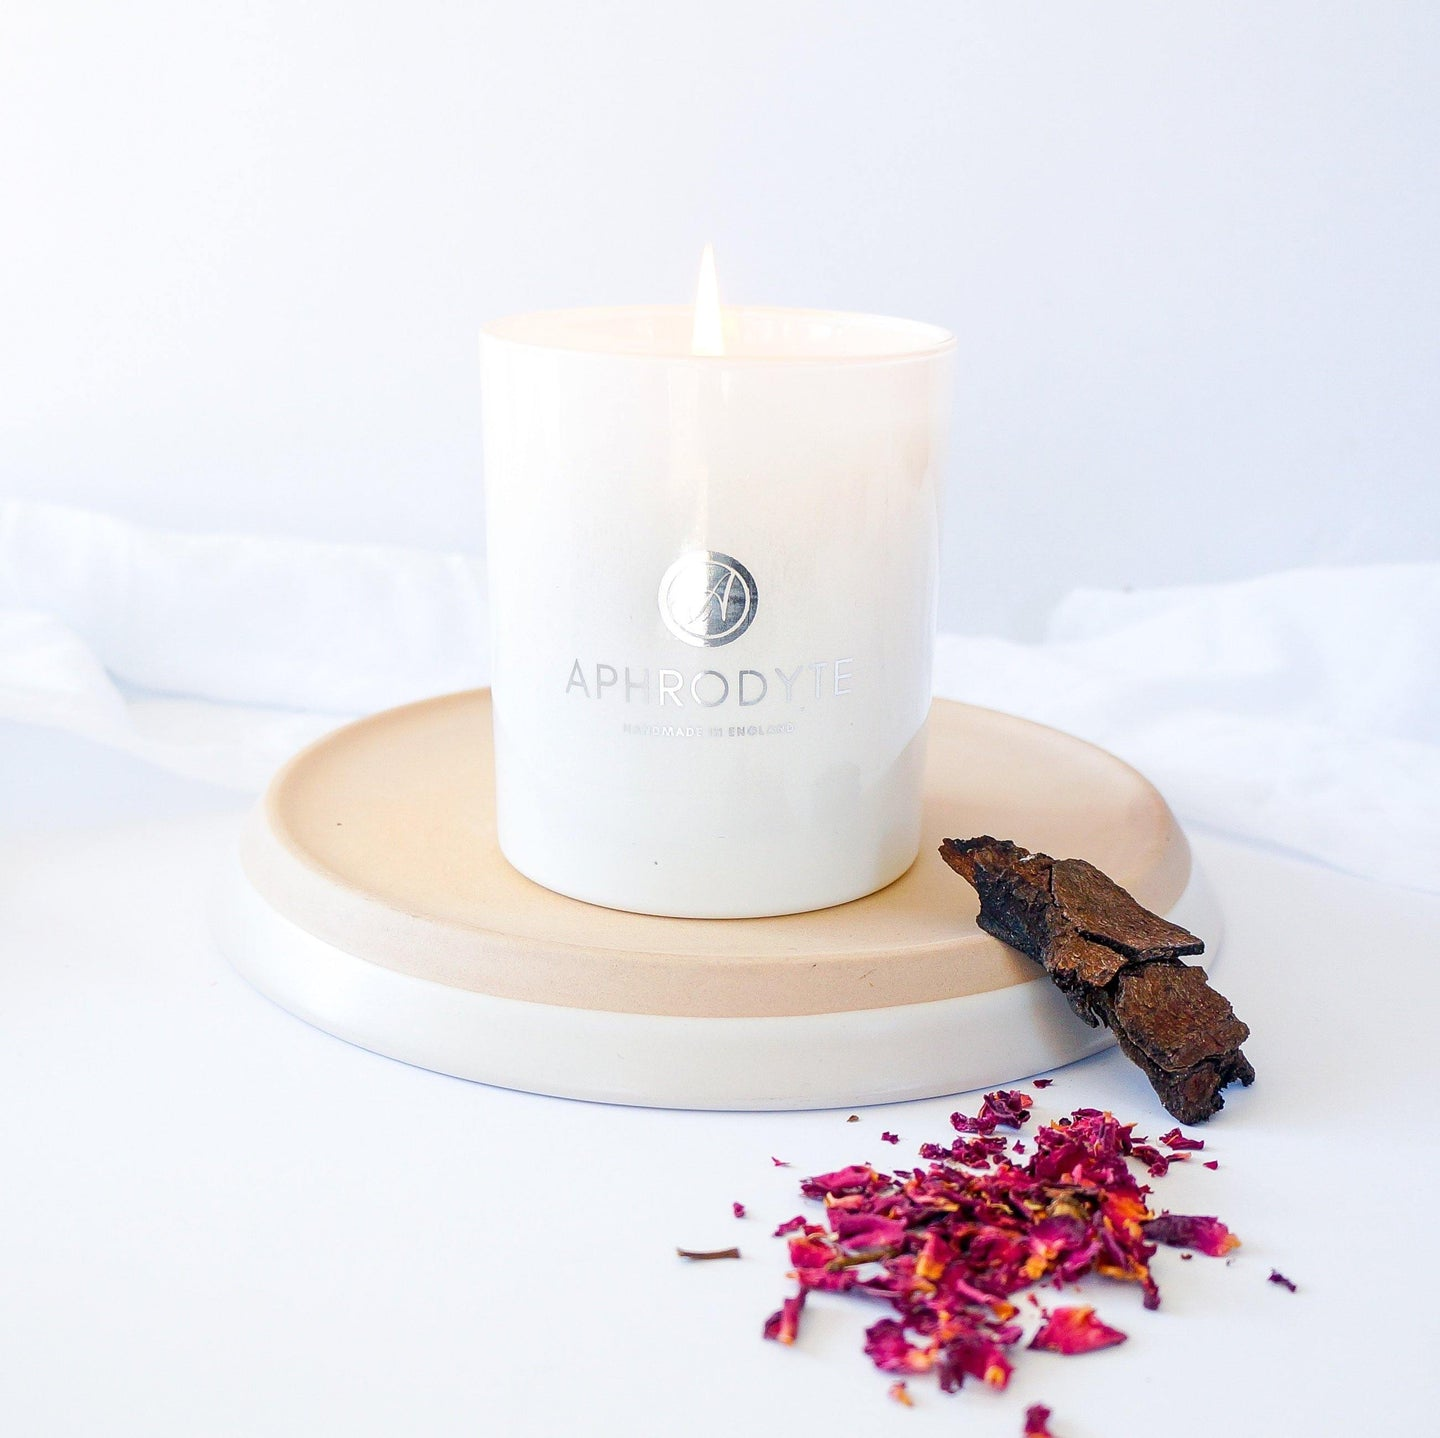 Damask Rose & Oud Candle - Aphrodyte